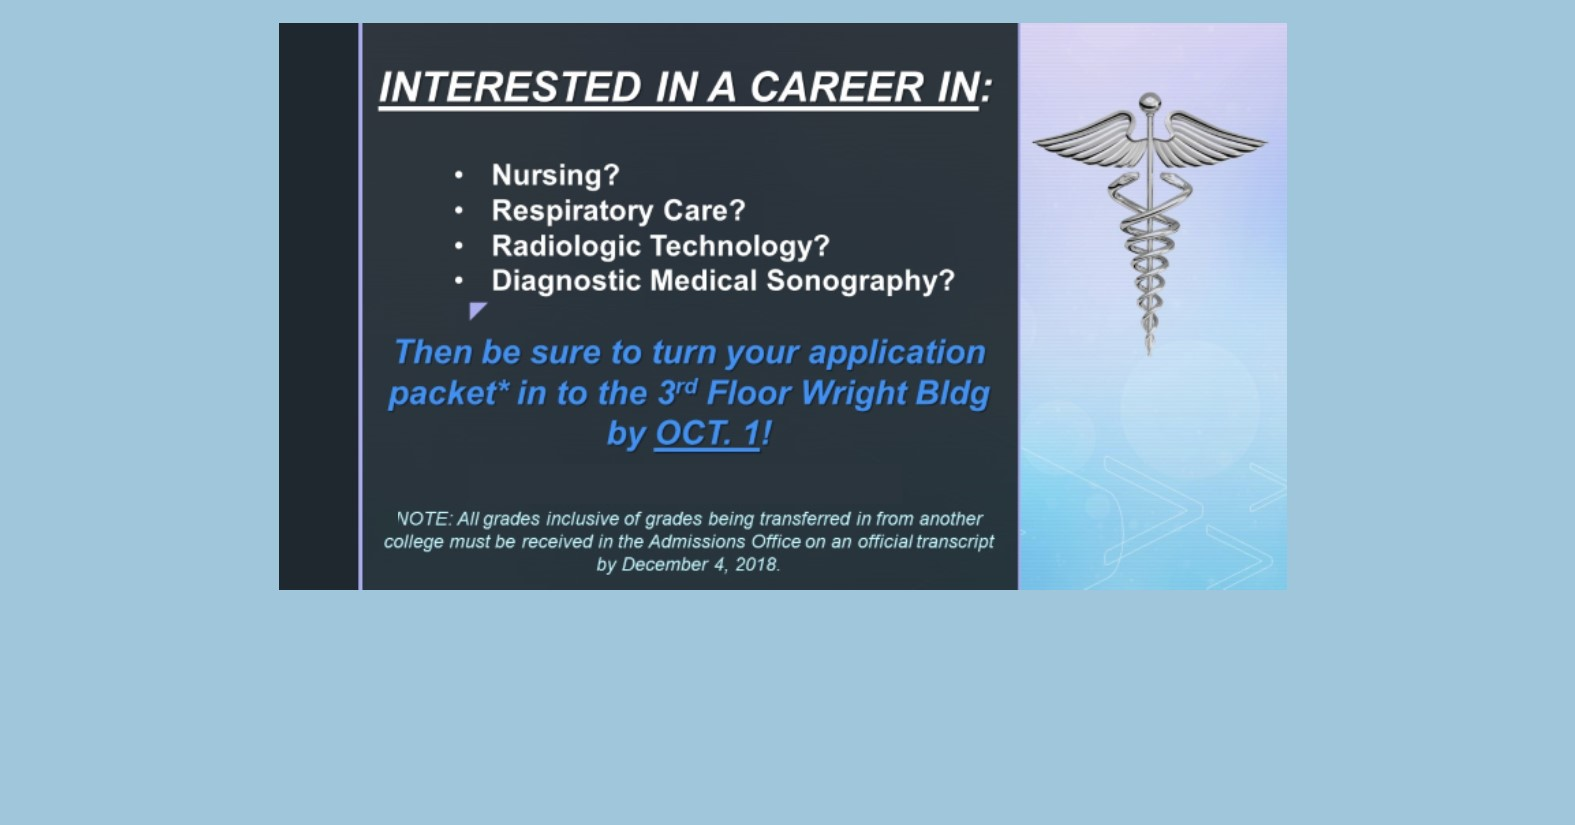 Future Healthcare Professionals, Take Note!